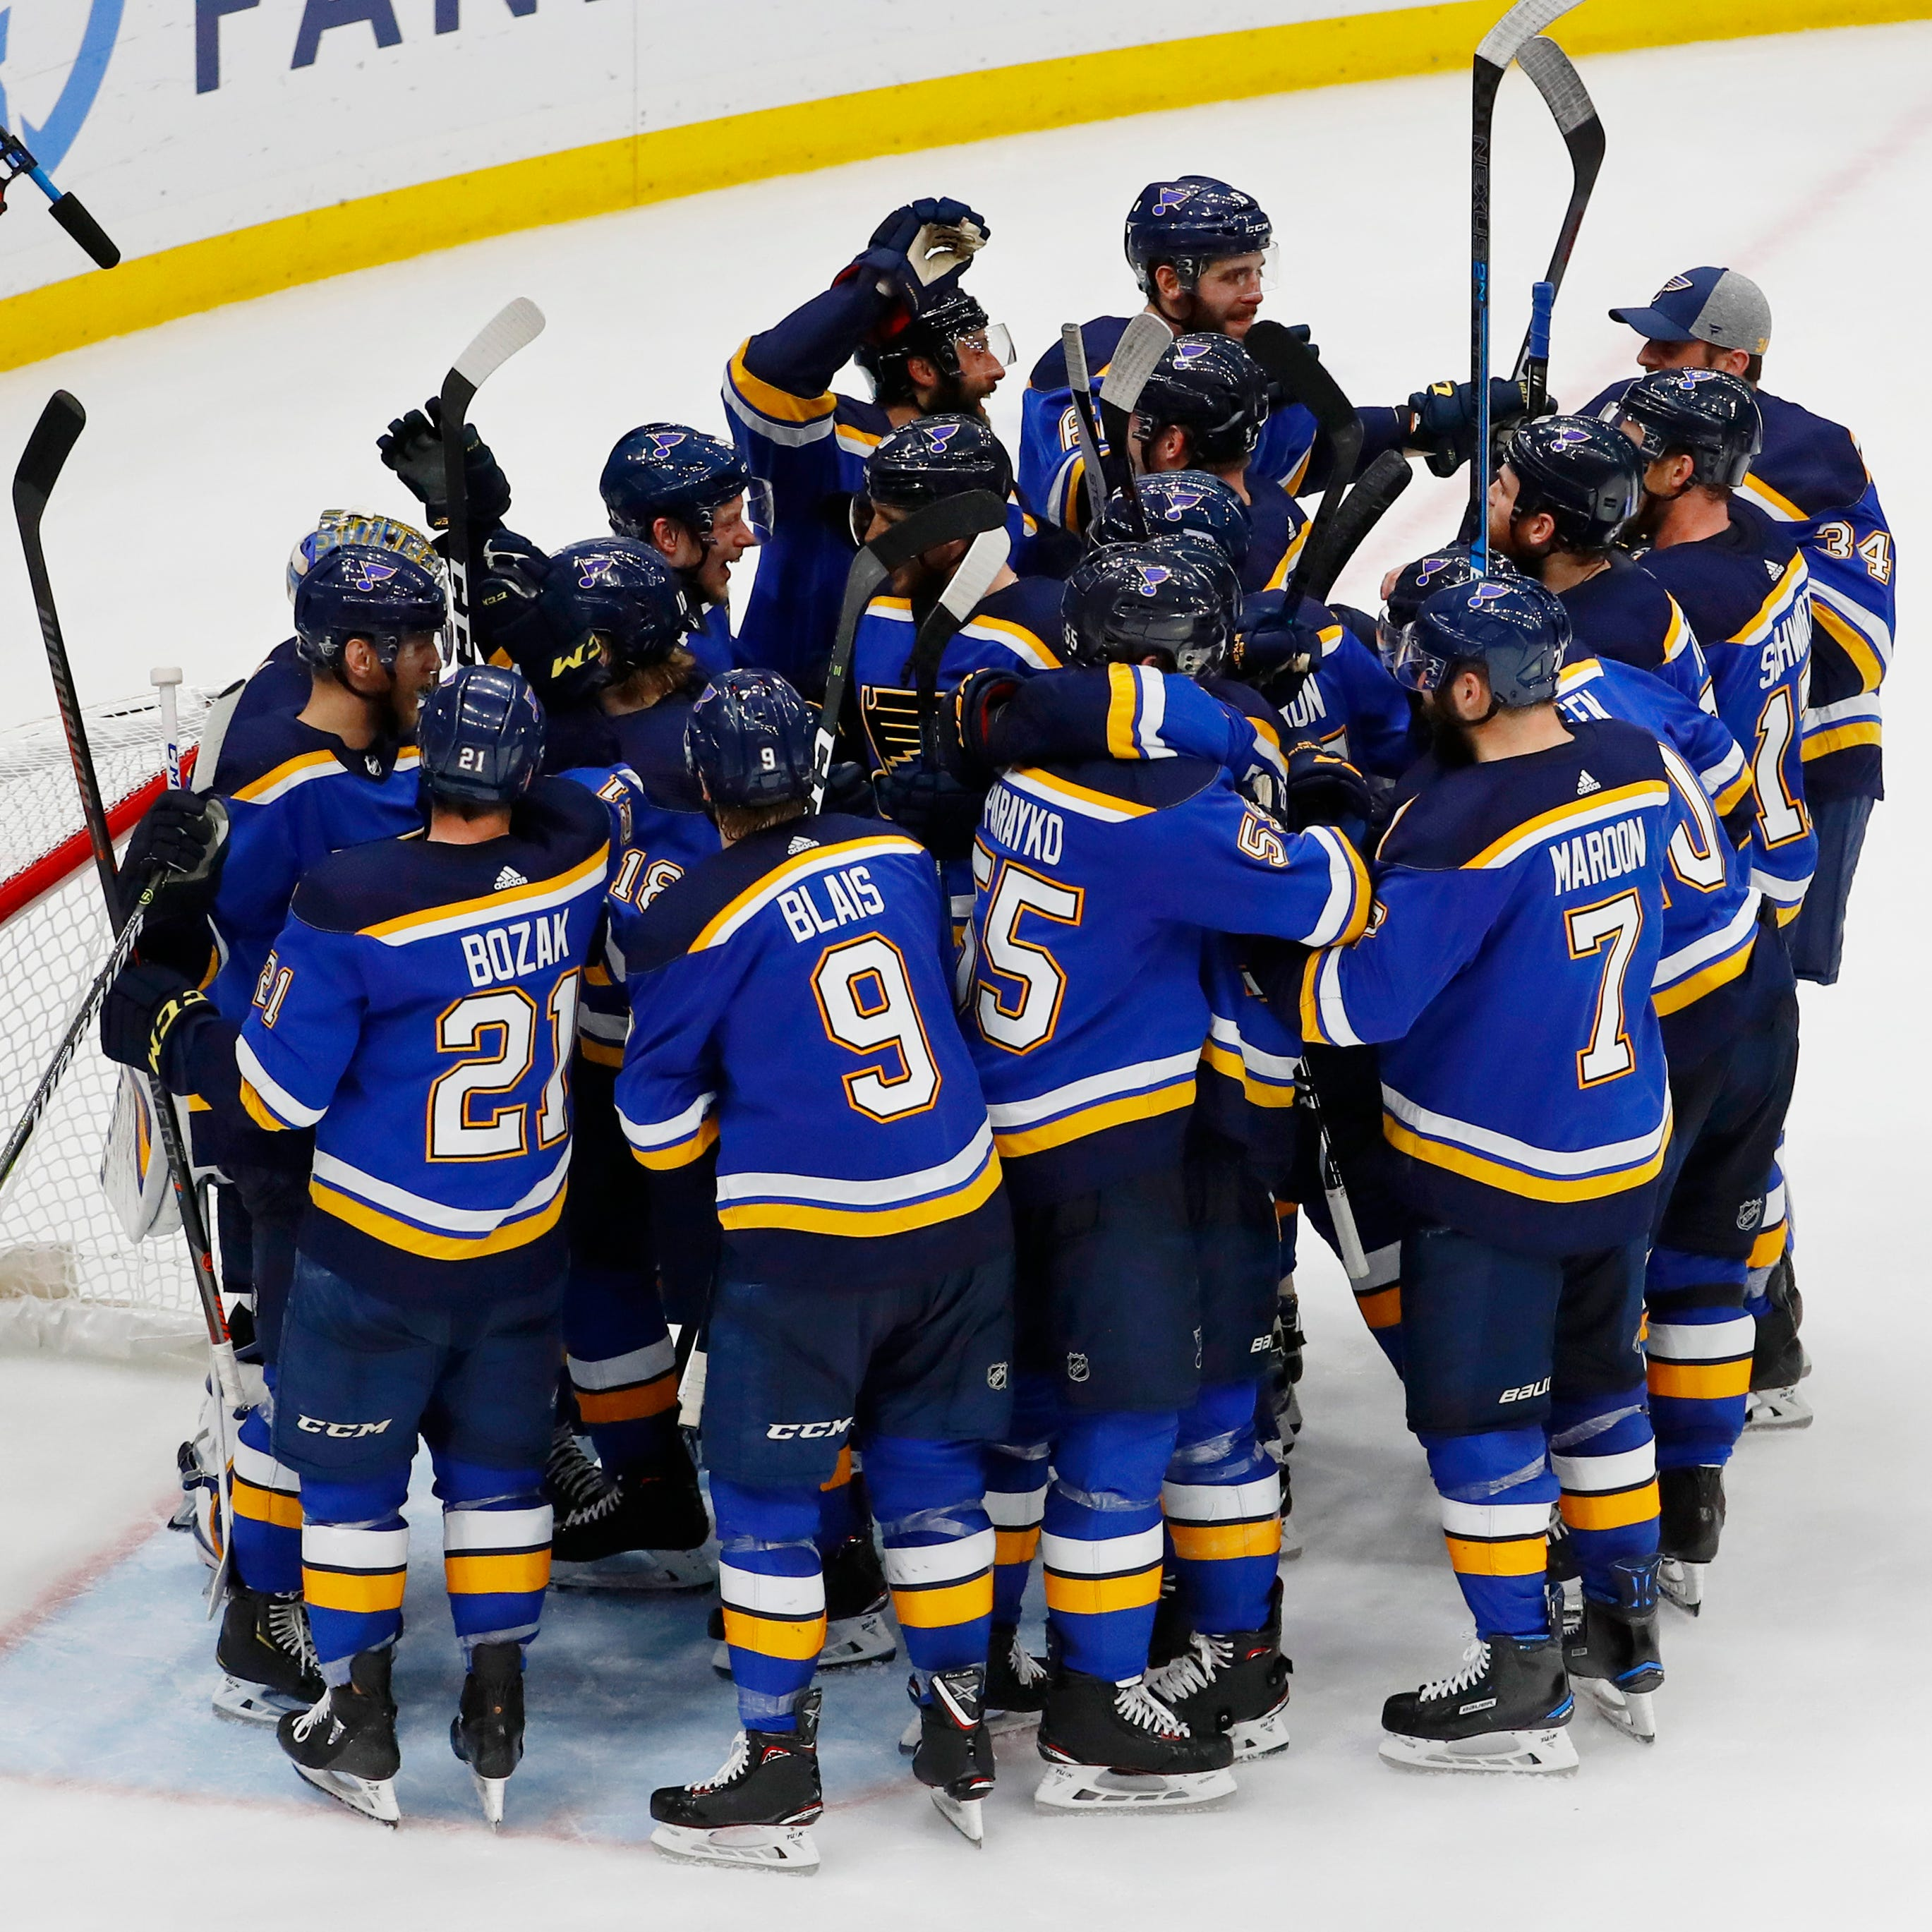 Blues celebrate their win over the Sharks that sent them to the Stanley Cup Final.